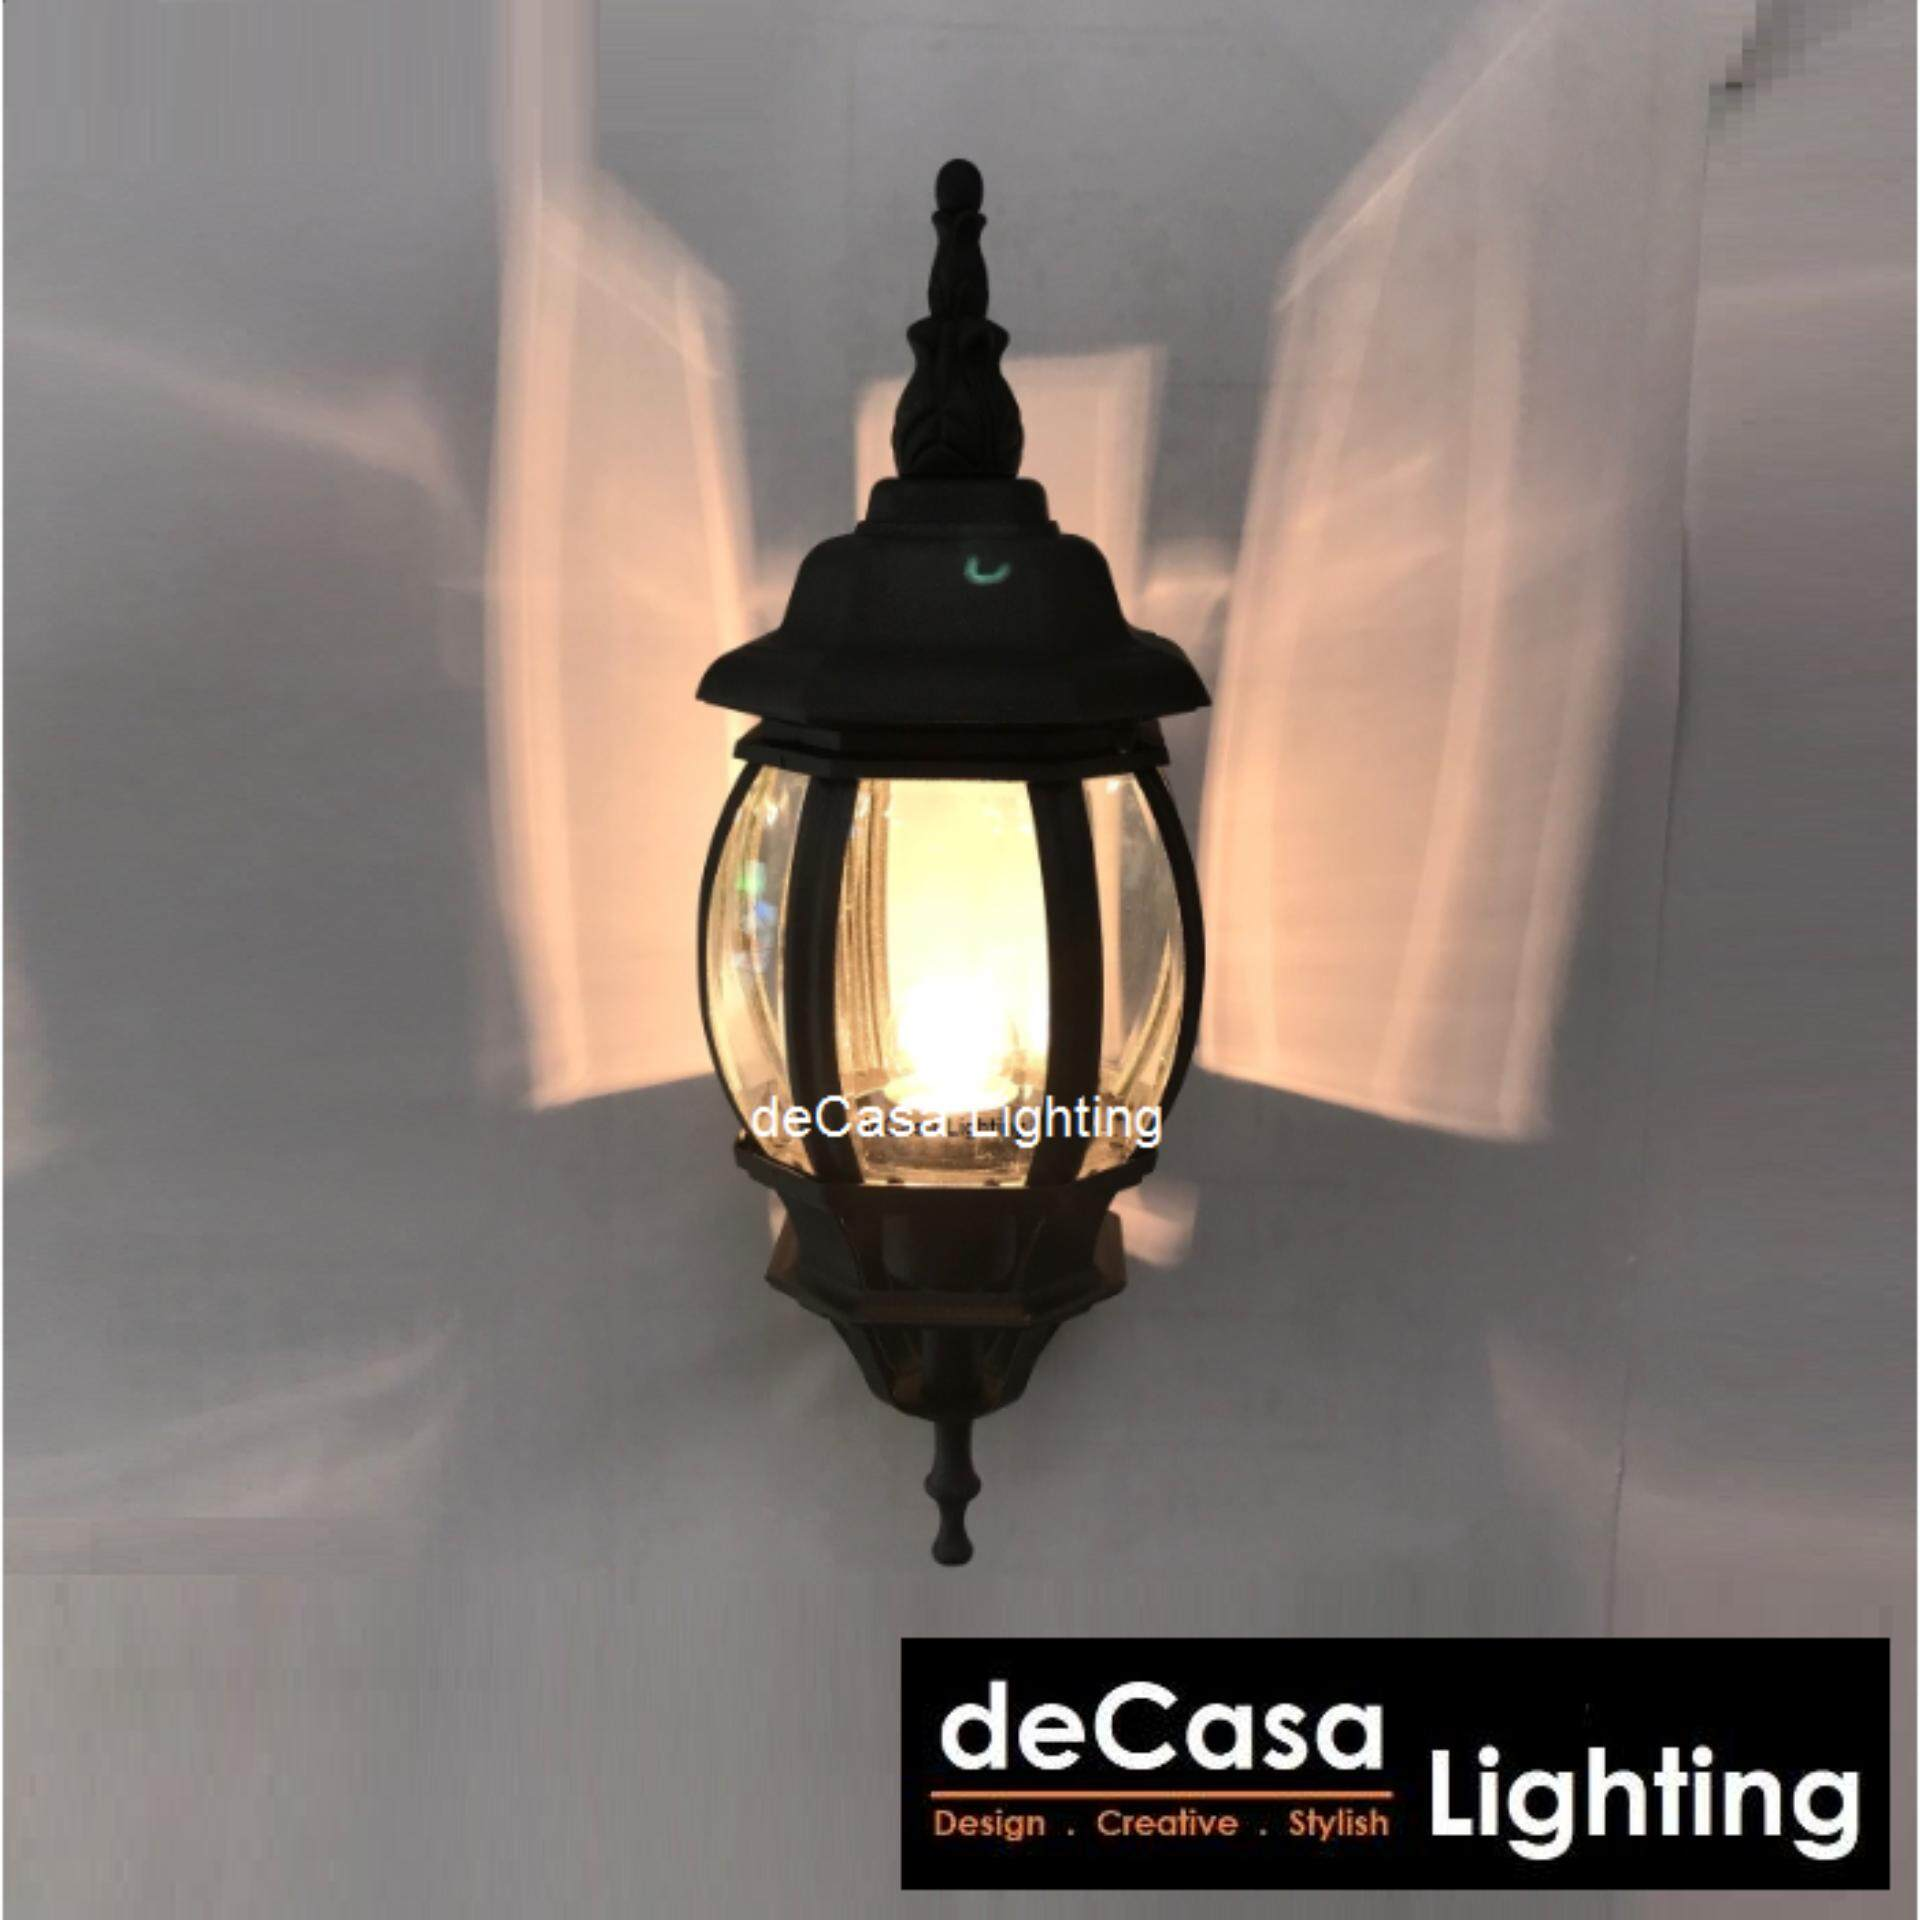 DECASA Best Seller Decorative Outdoor Wall Light E27 Lamp Holder Black Wall Light (OD-W5003N/S-BK)